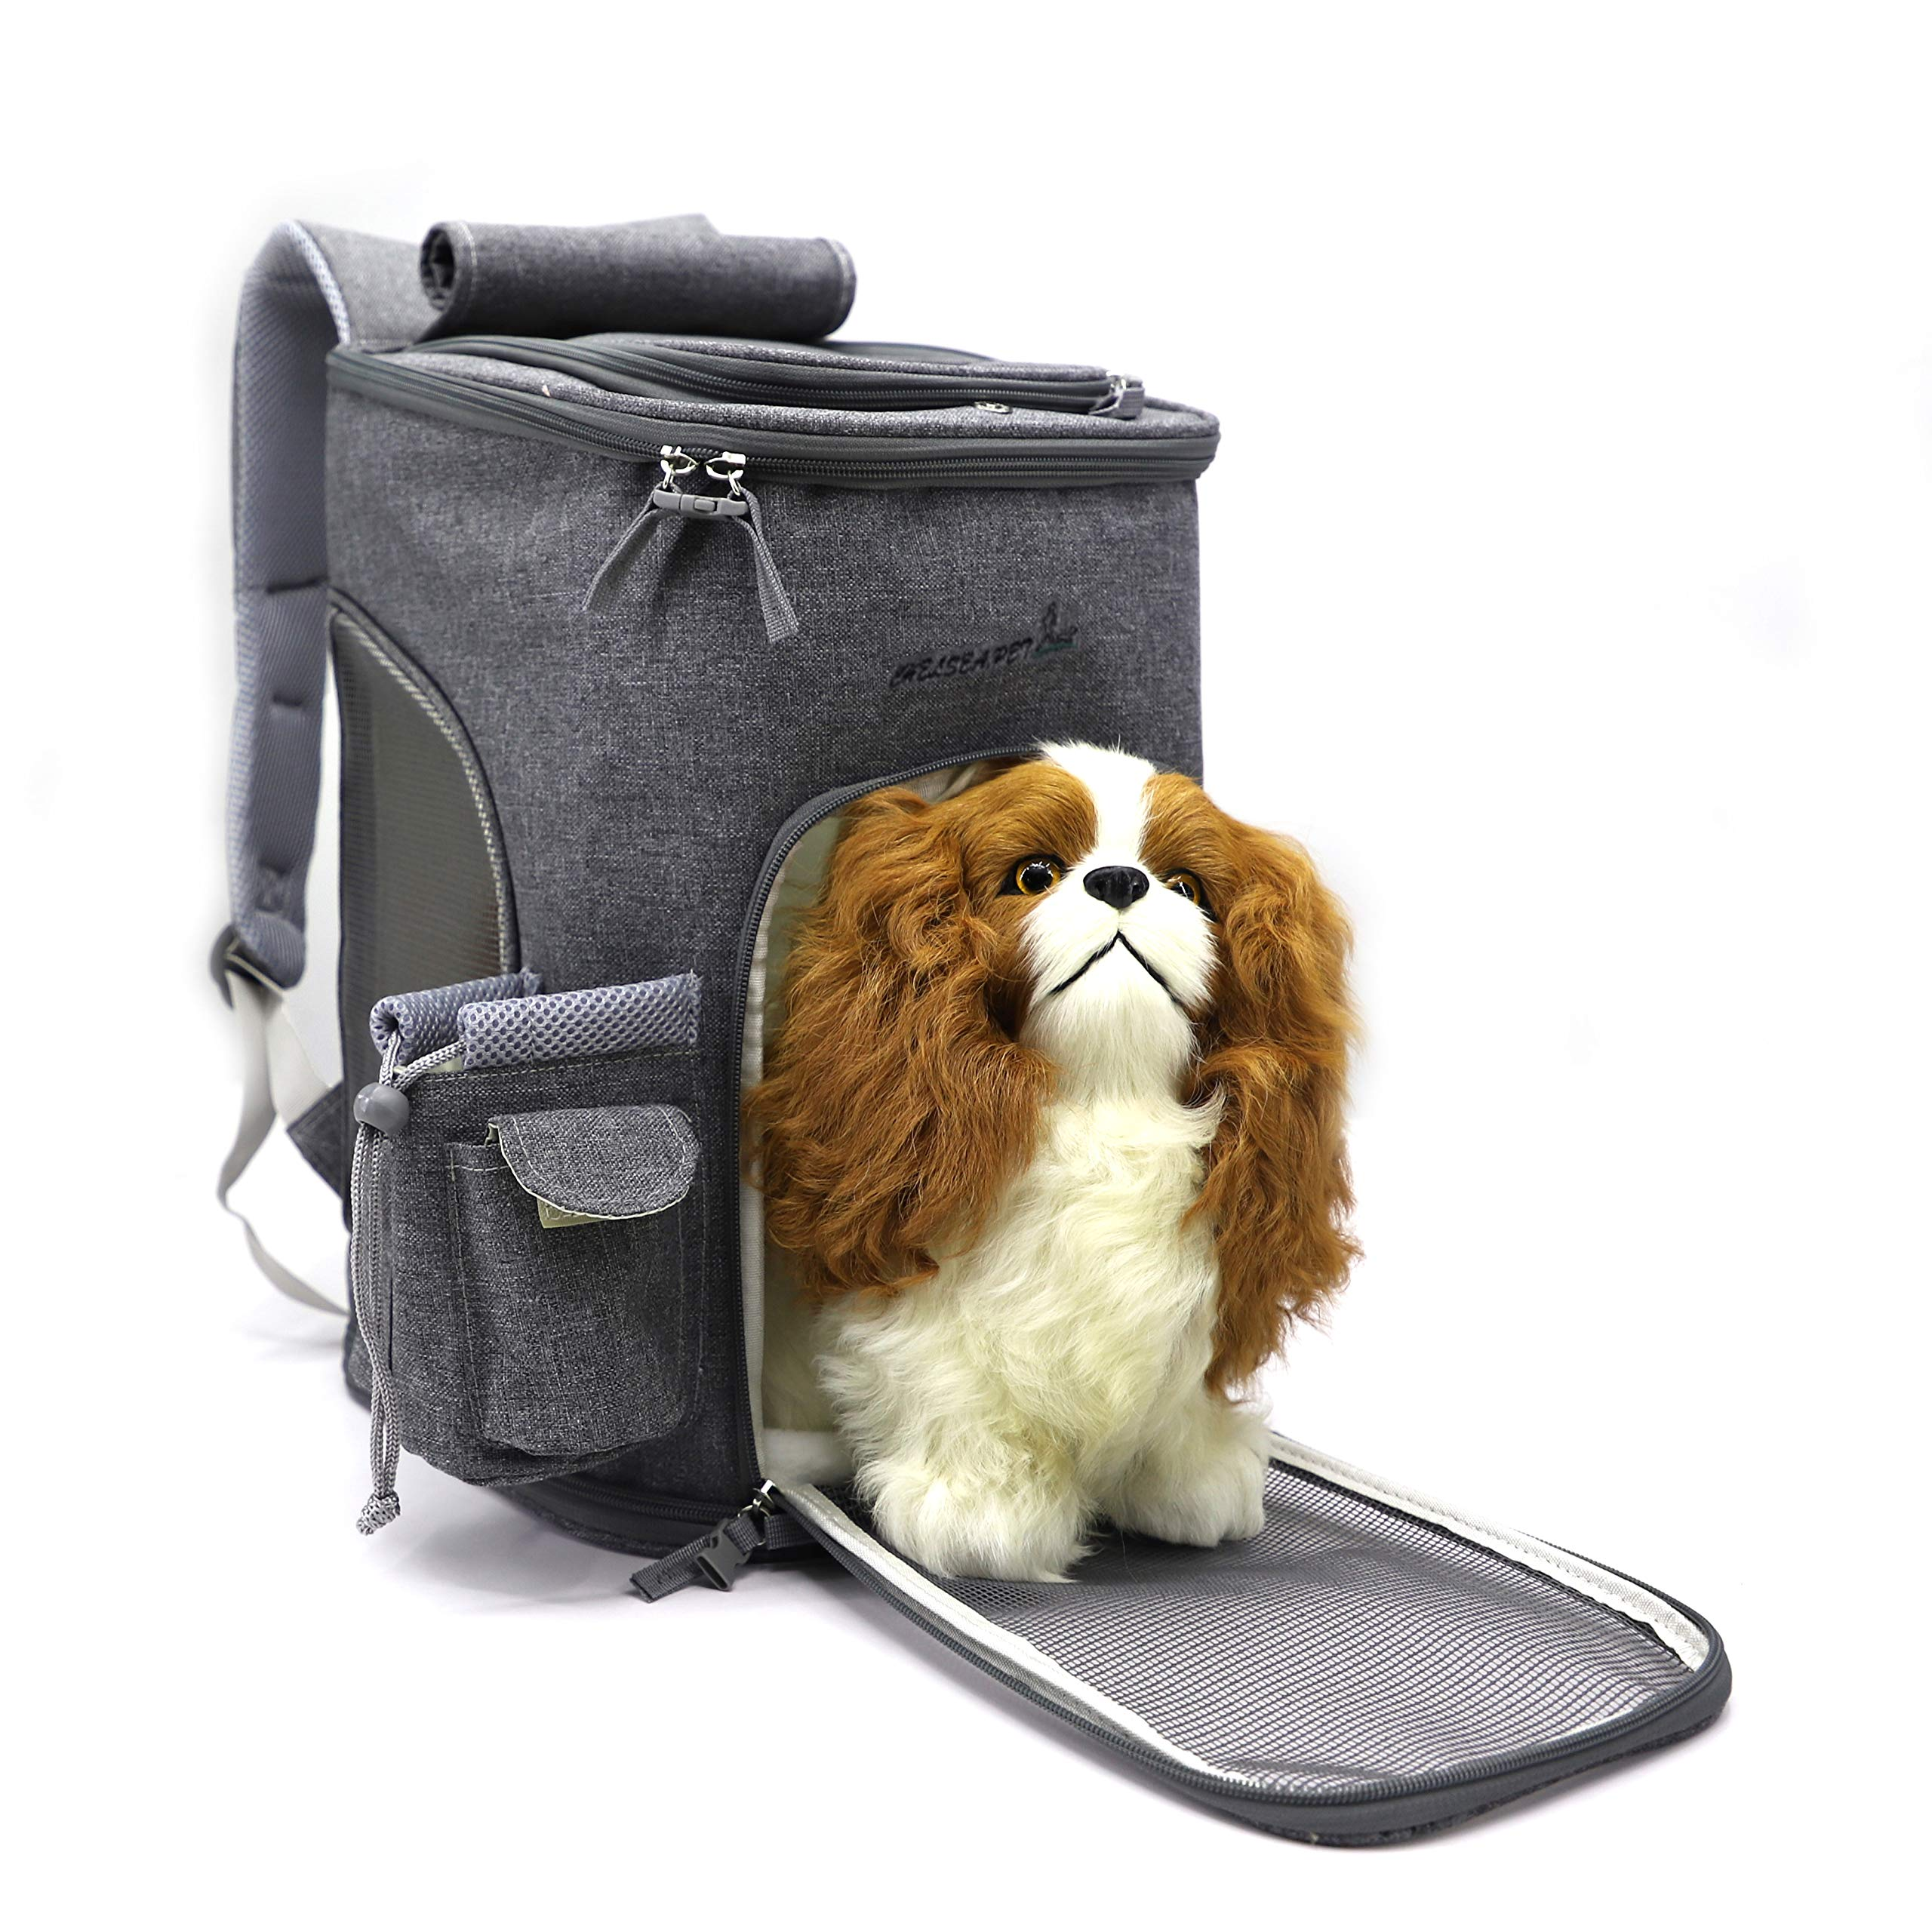 Soft-Sided Pet Carrier Backpack for Small Dogs and Cats Airline-Approved, Designed for Travel, Hiking, Walking & Outdoor Use(Grey)